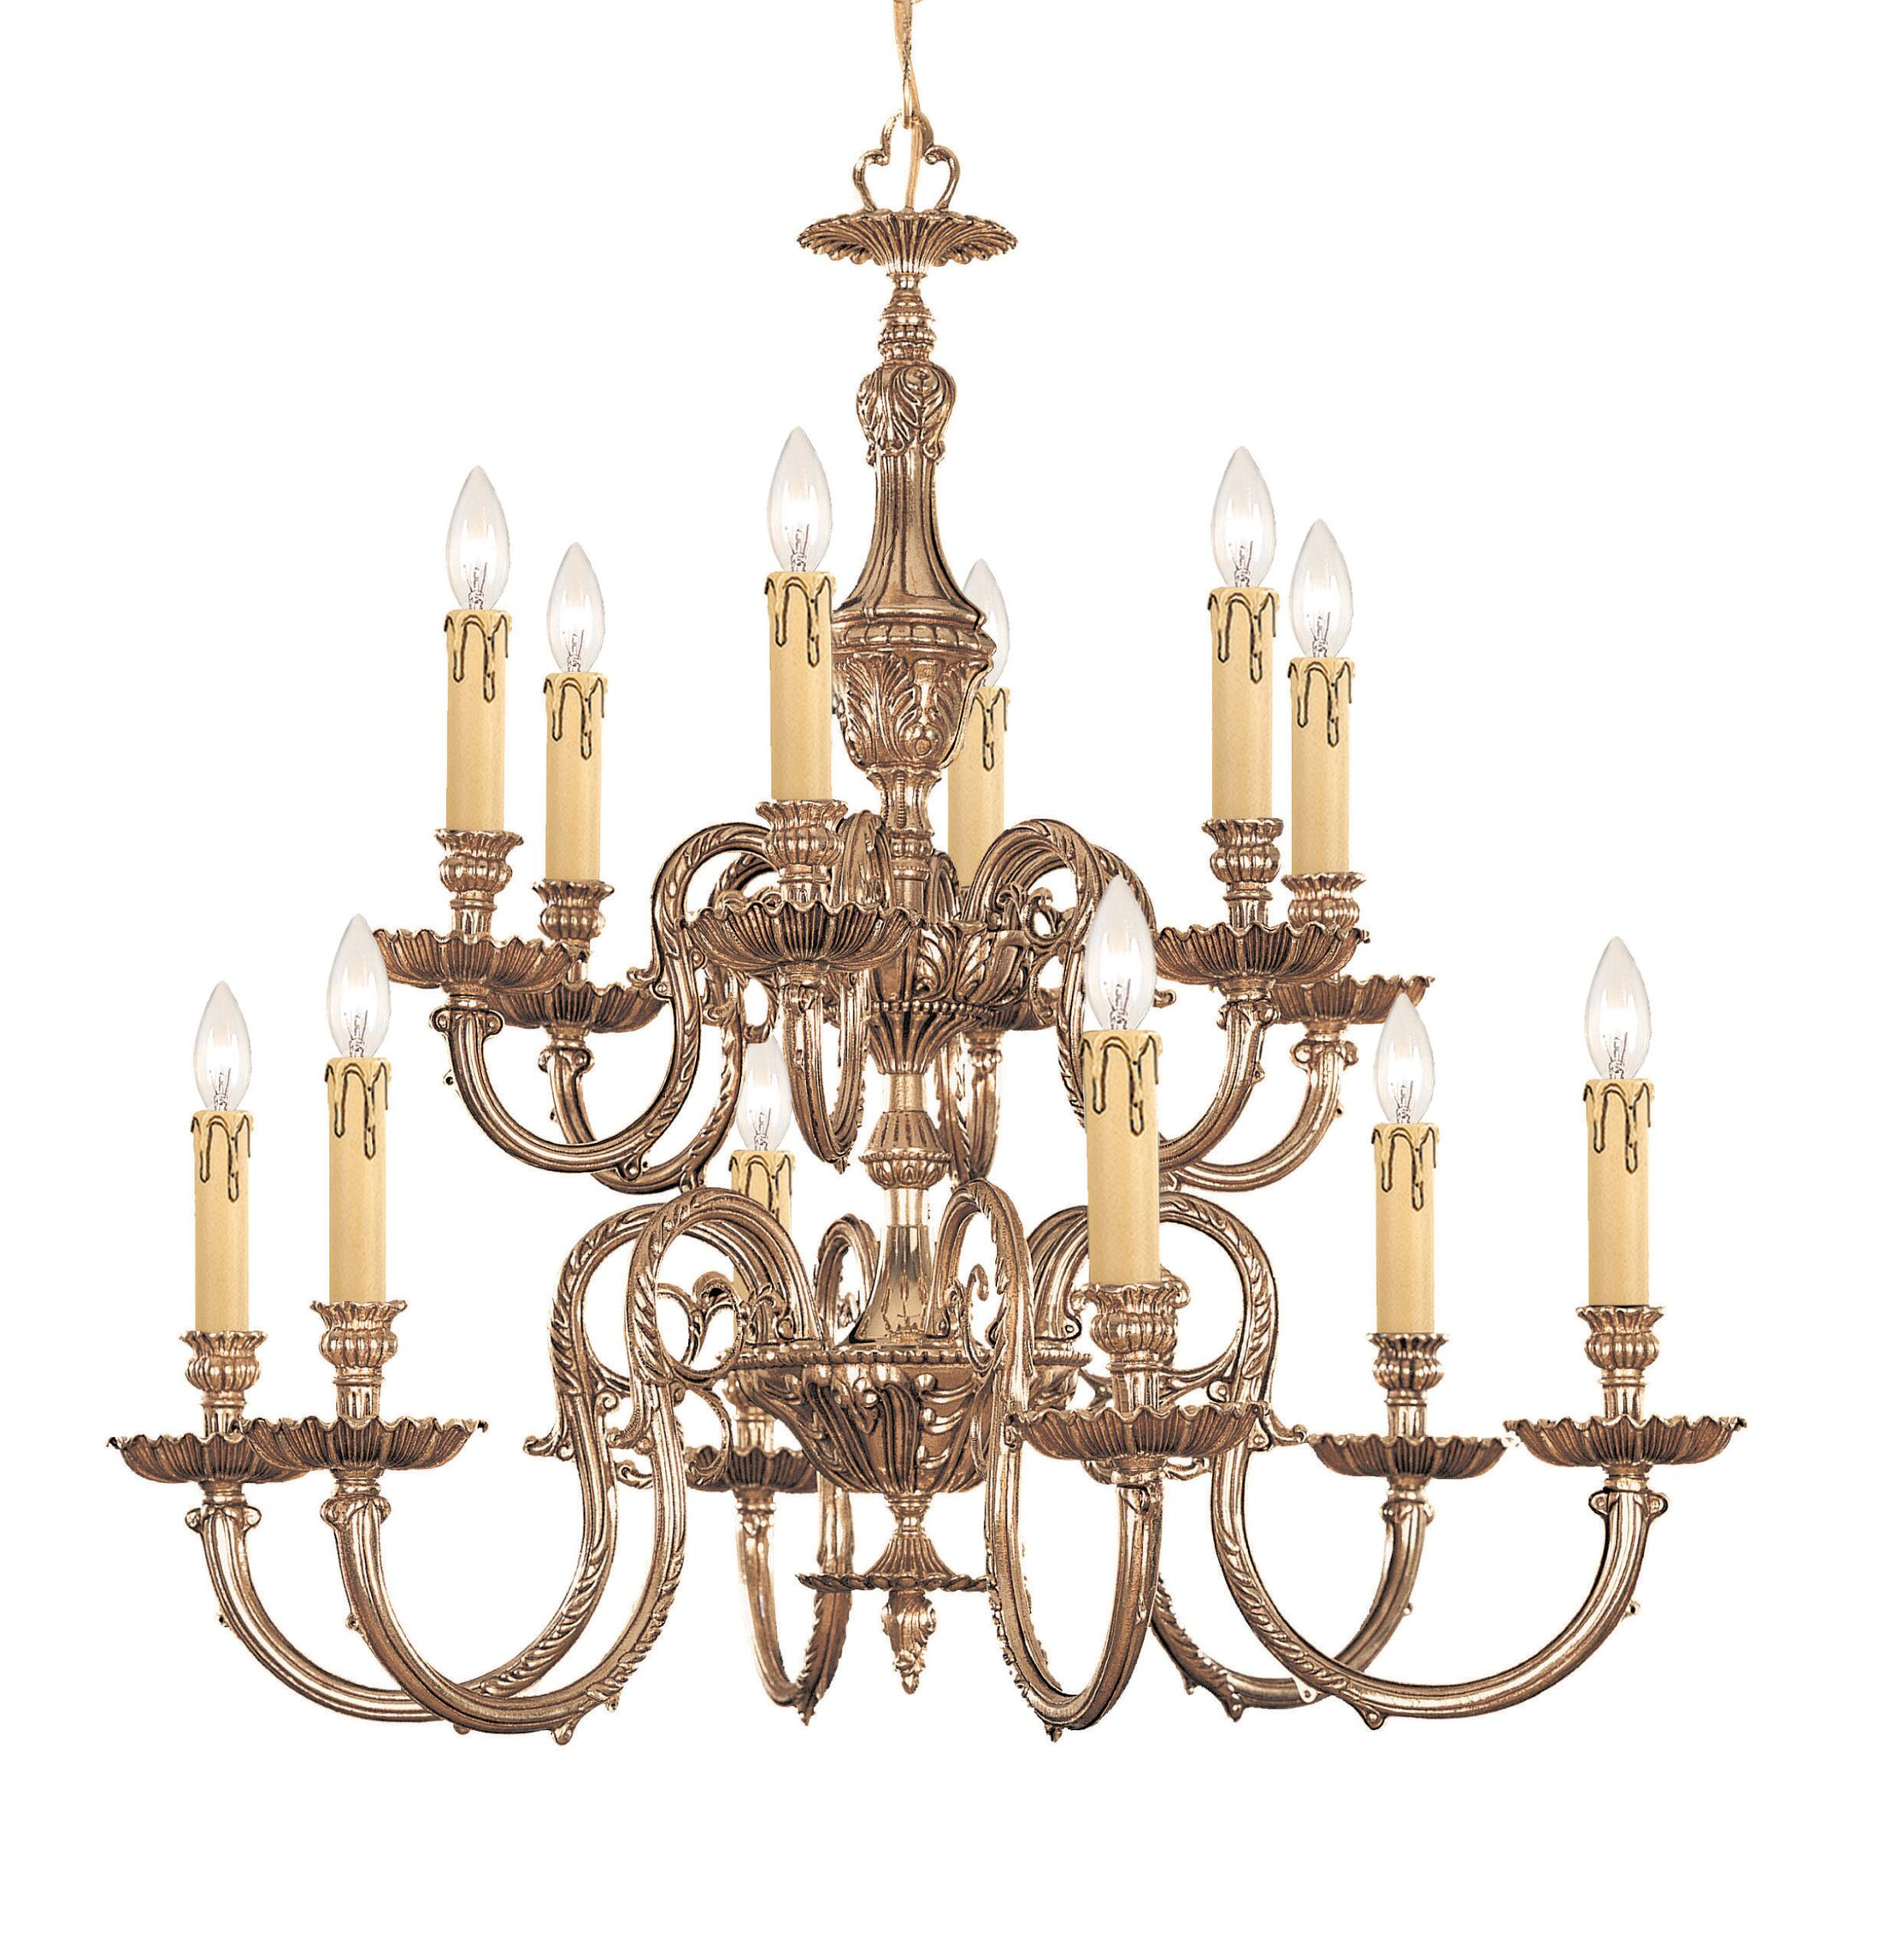 Aureolin 12-Light Candle-Style Chandelier